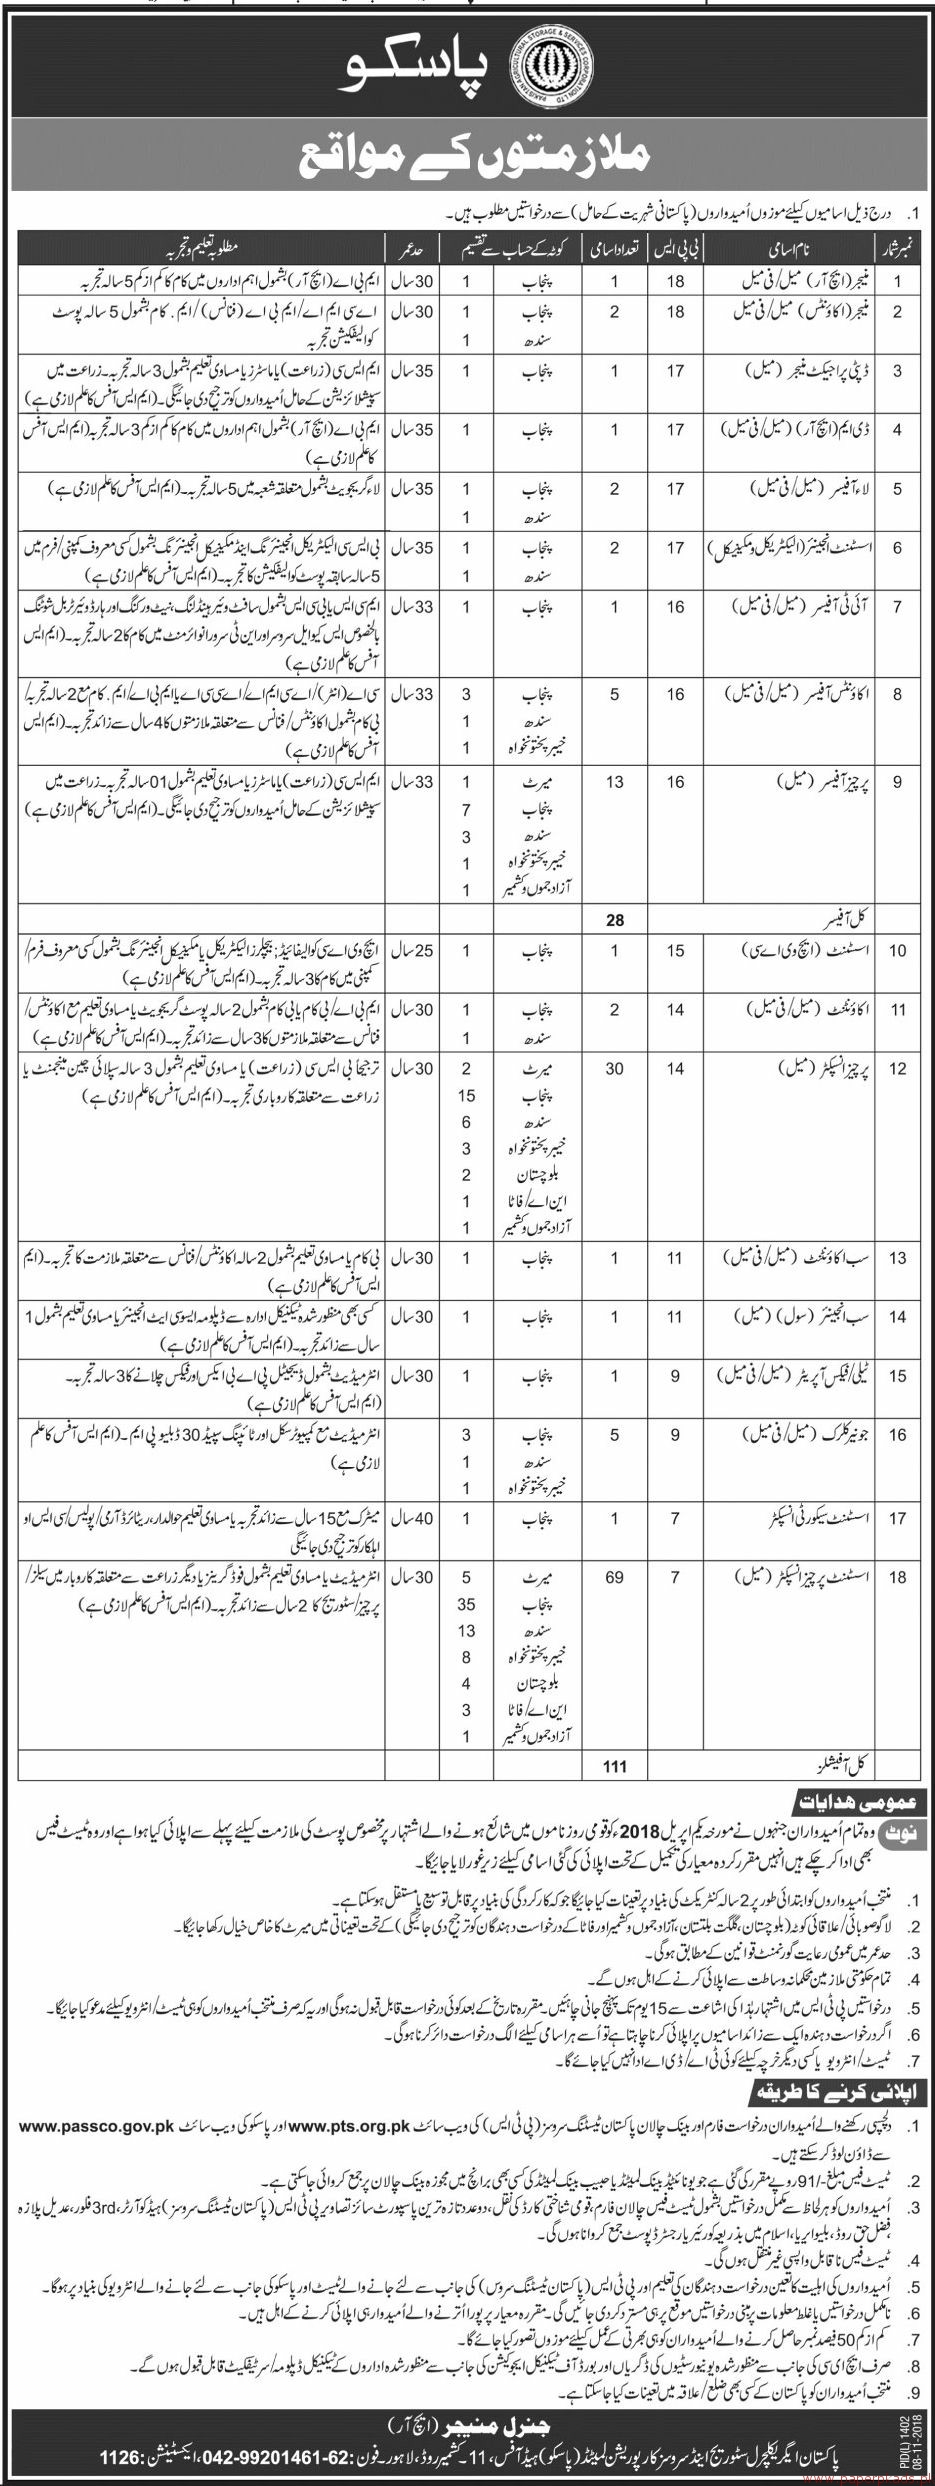 Pakistan Agriculture Storage and Services Corporation PASSCO Jobs 2018 Latest